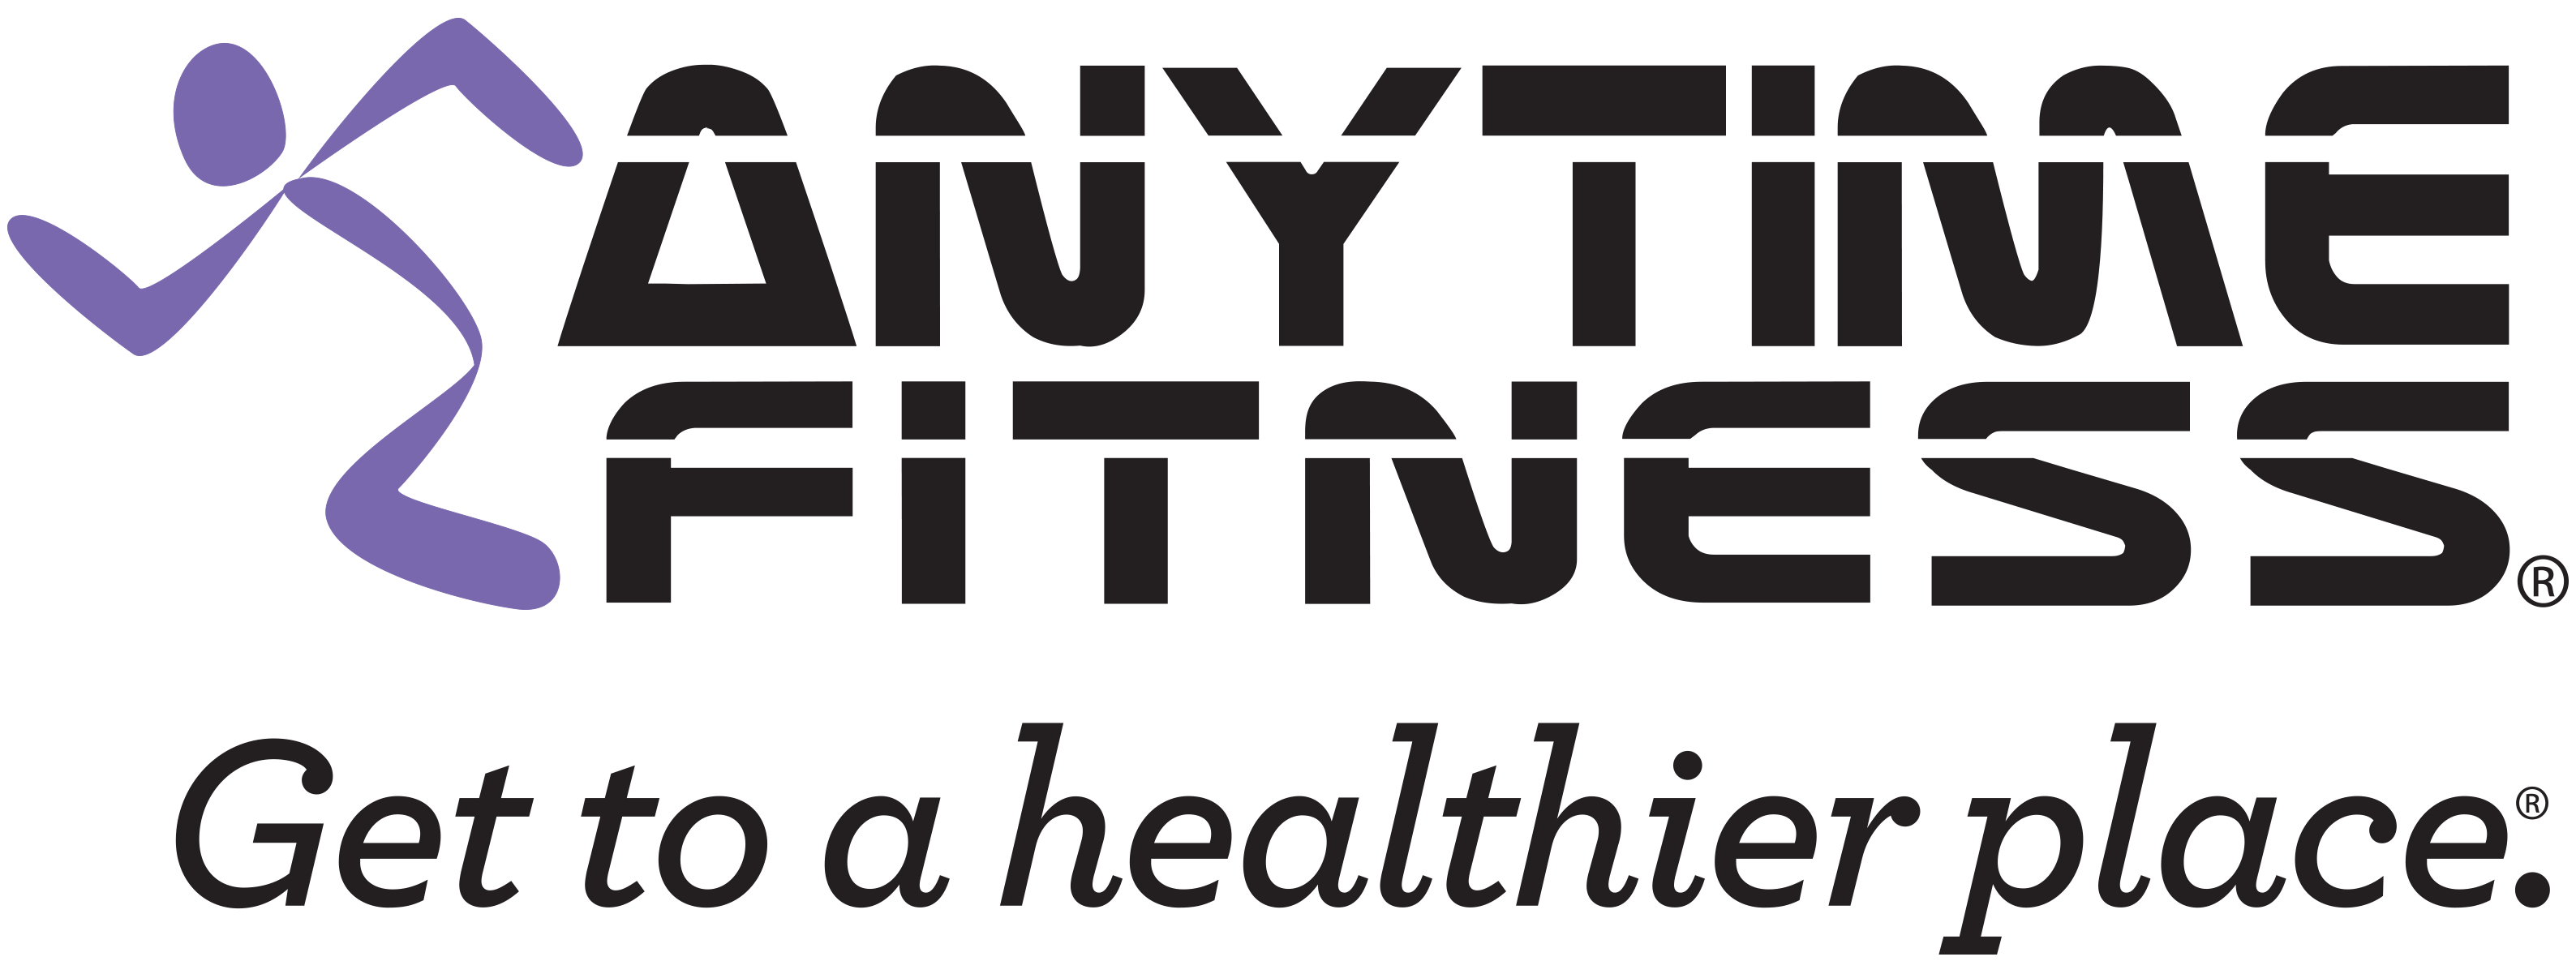 Model vector fitness. Images videos anytime get